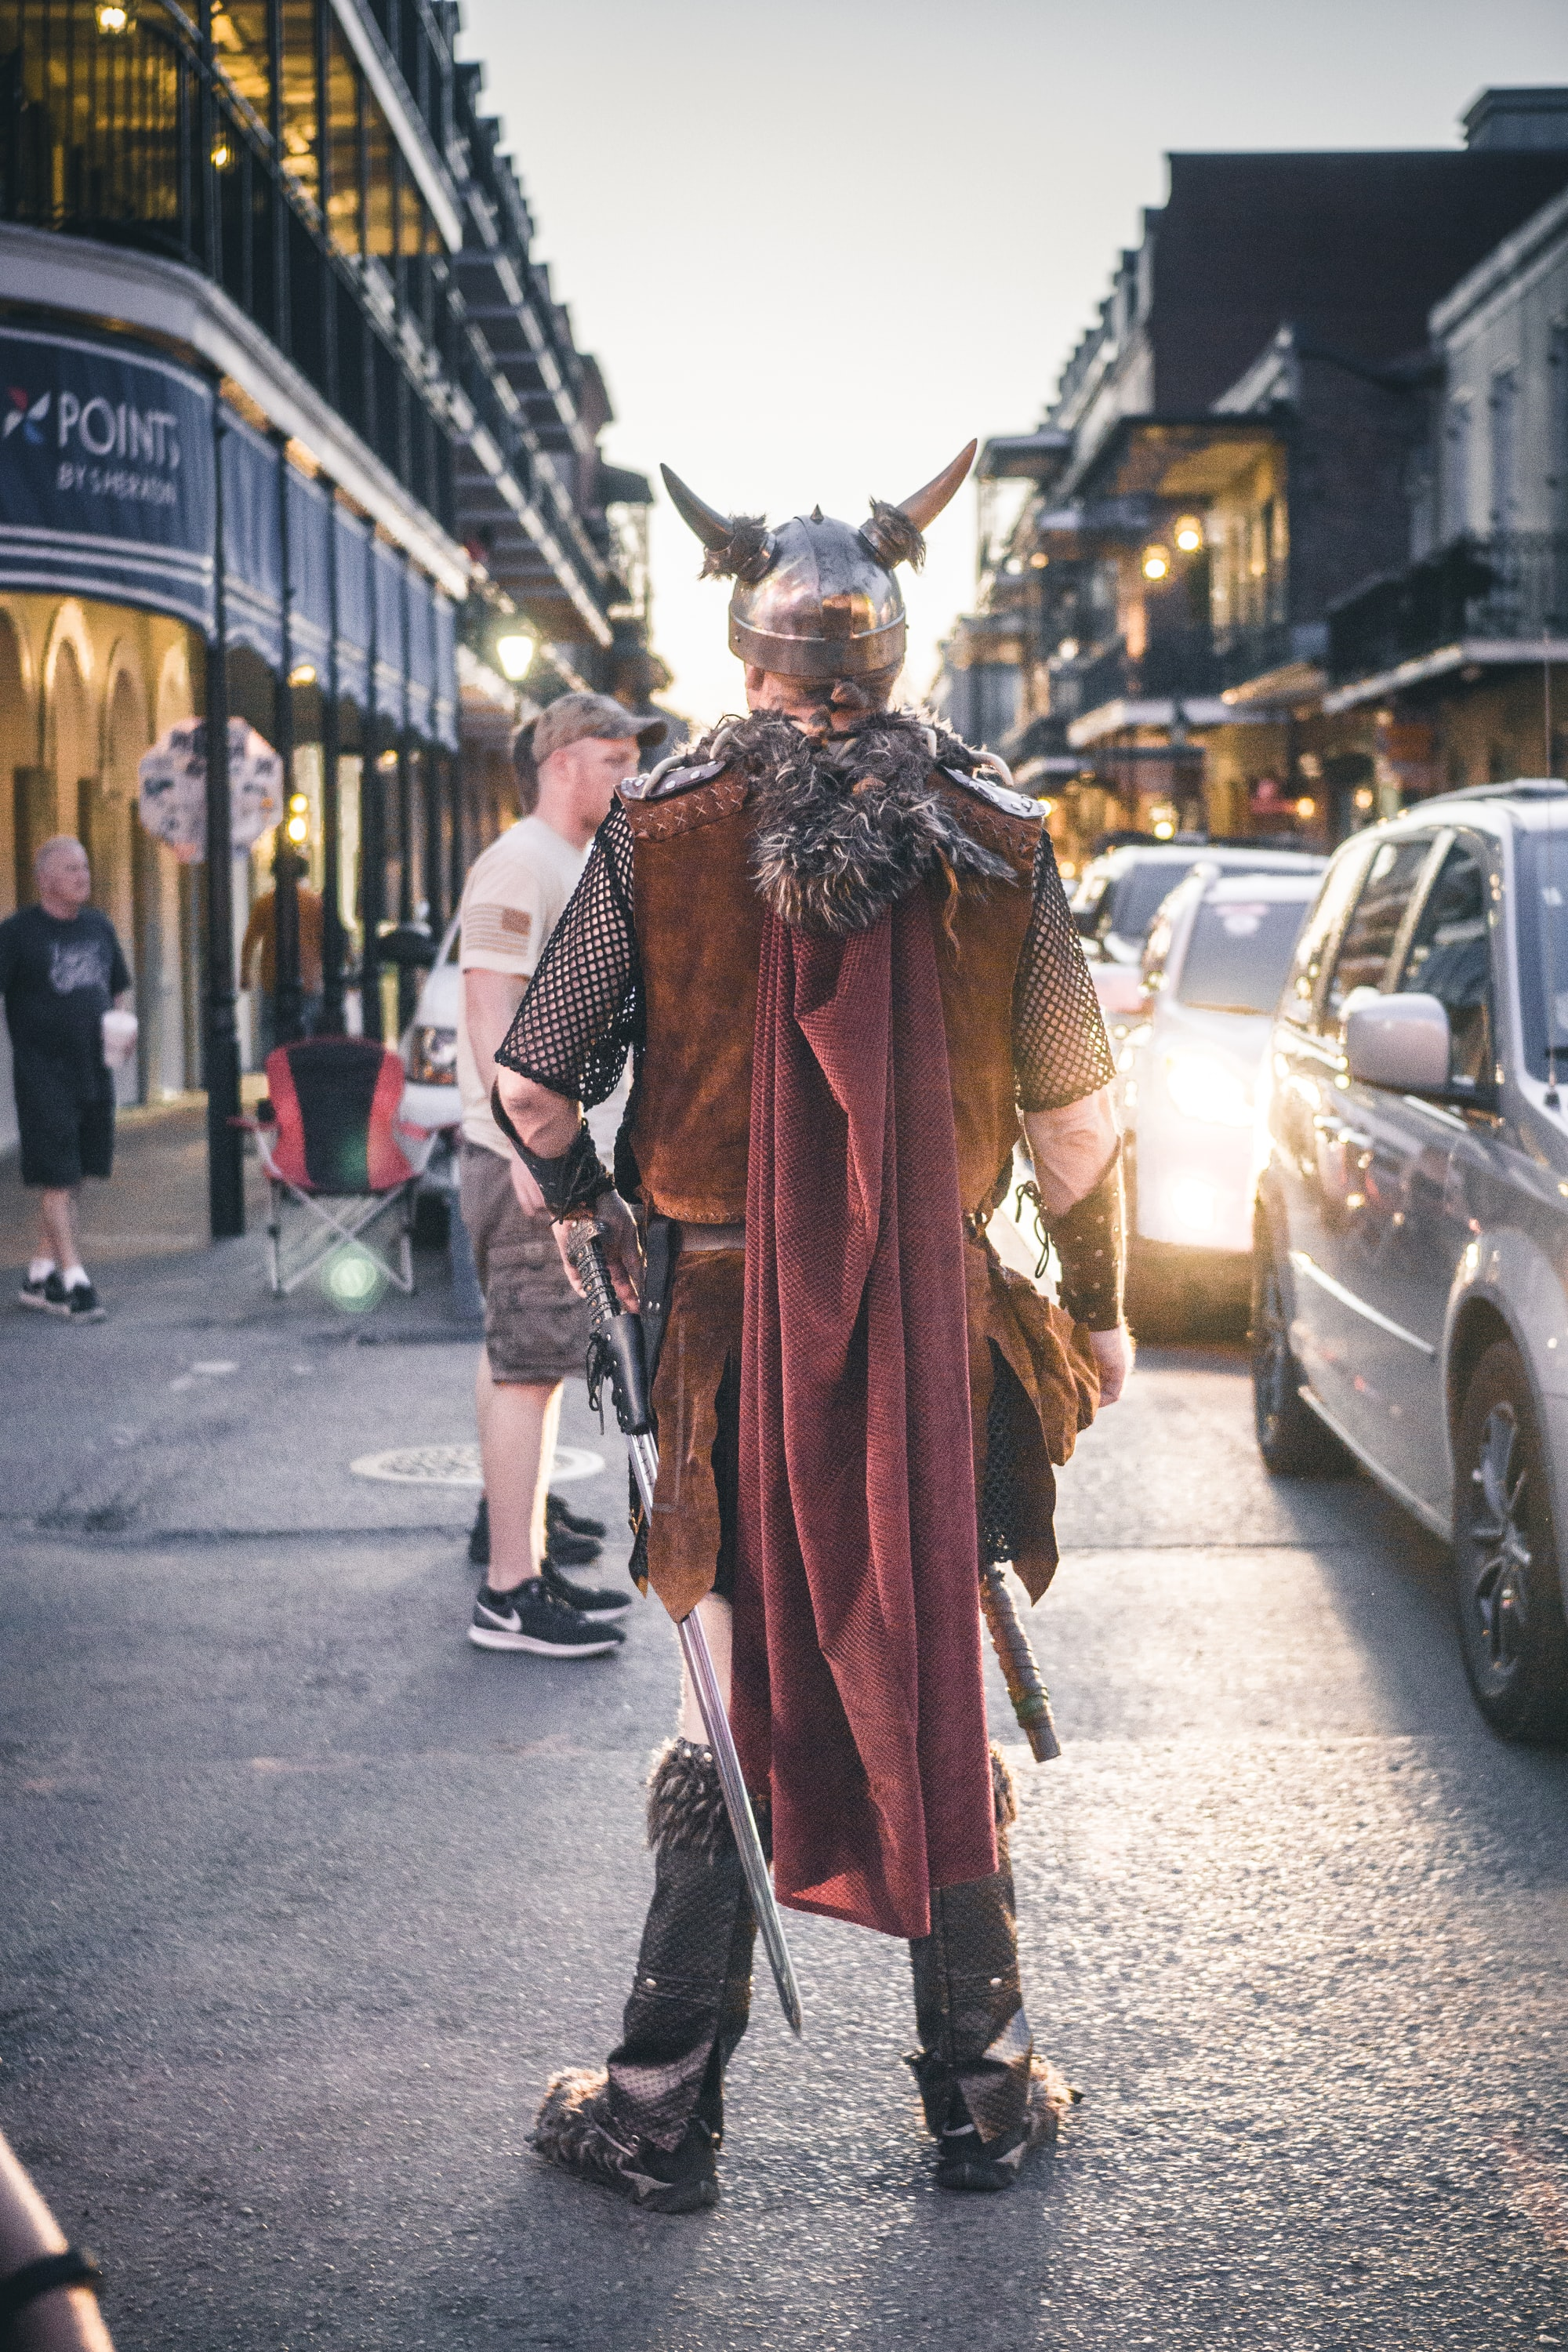 Found this viking in the streets of New Orleans.